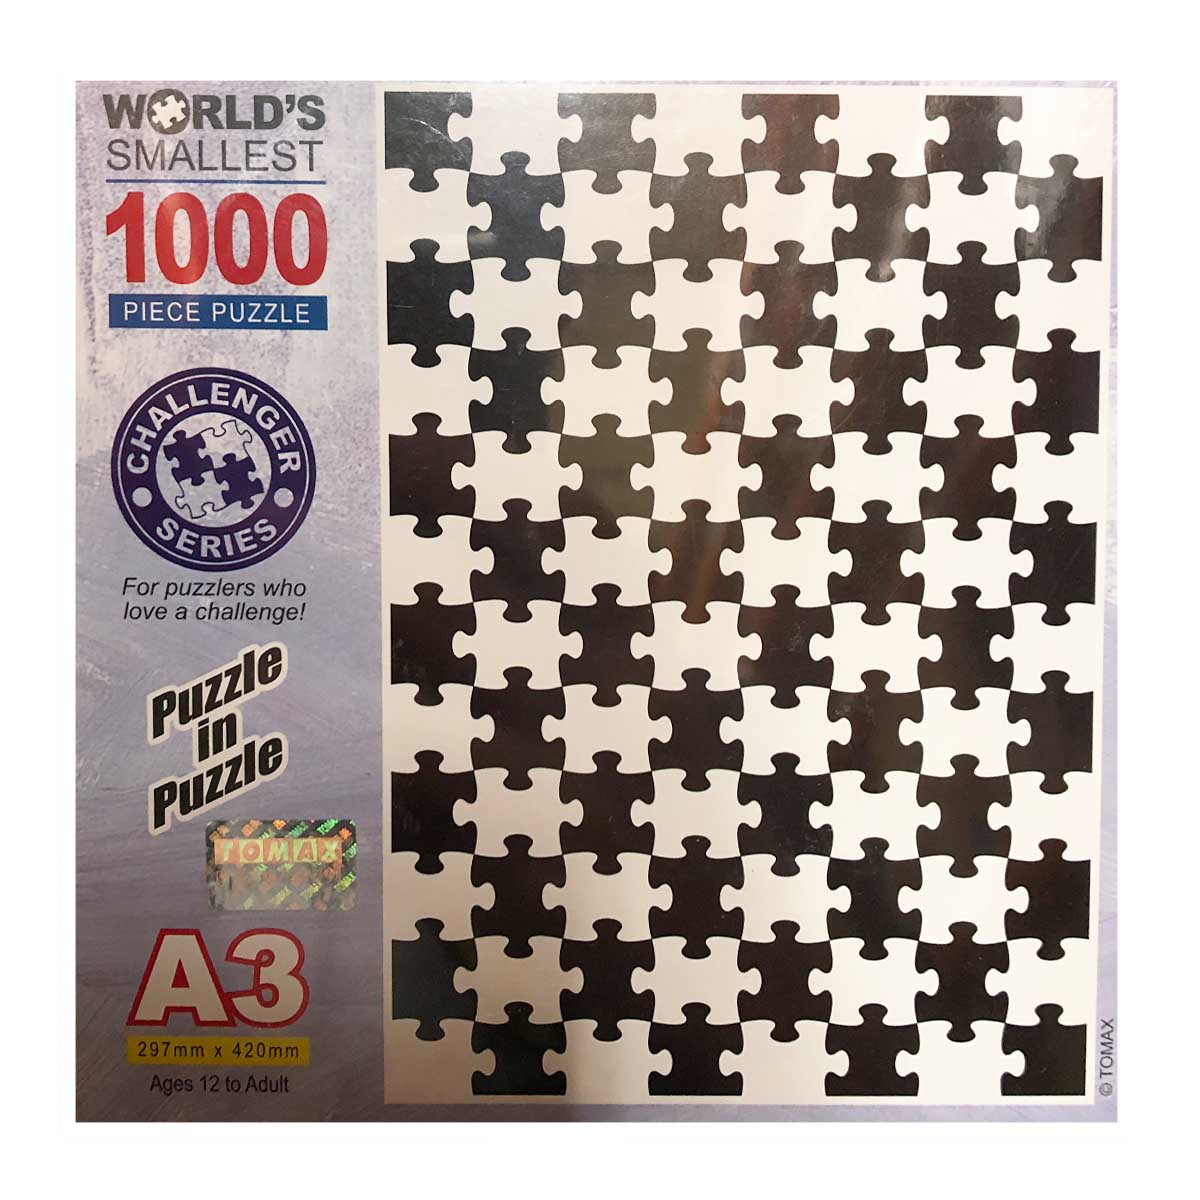 Puzzle In Puzzle (Mini) Abstract Jigsaw Puzzle